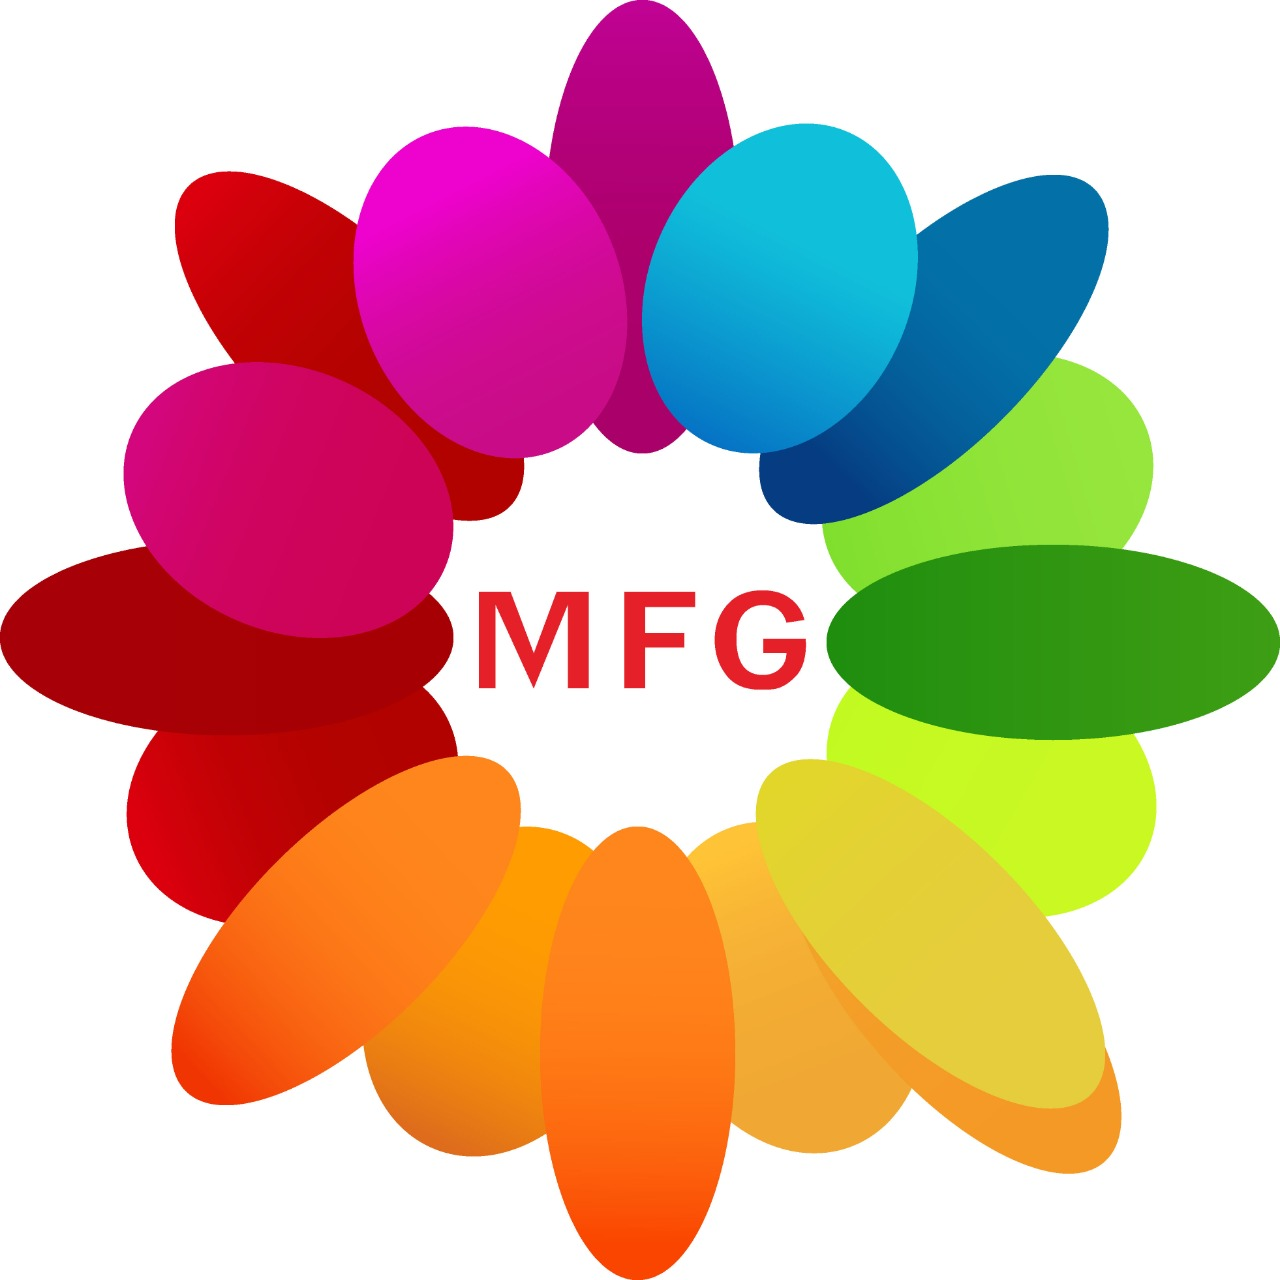 10 Pink carnations,10 Pink Roses,3 pink lilies in Vase